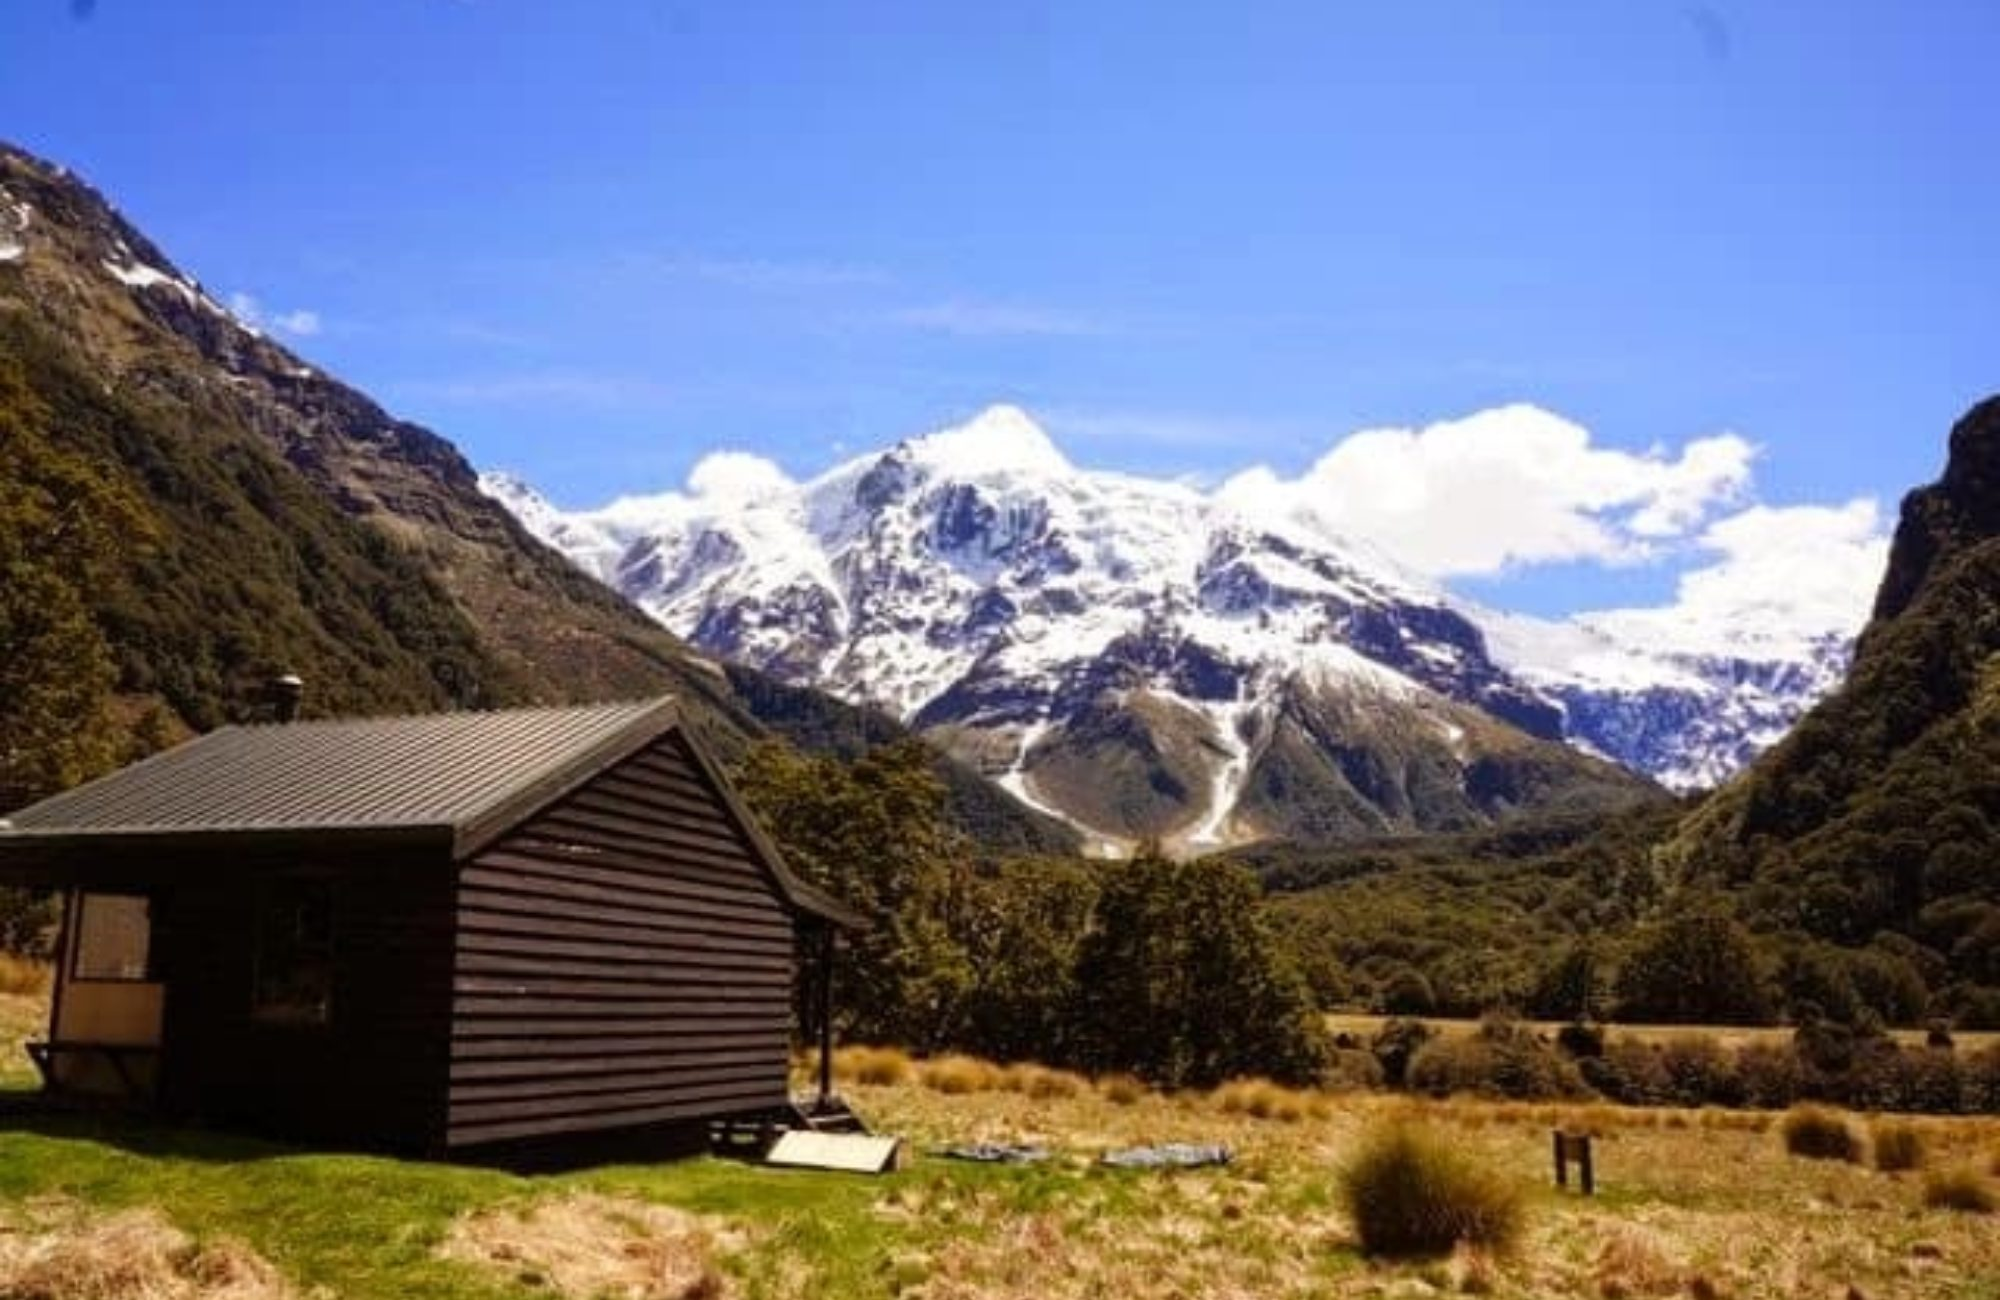 Top Forks Hut